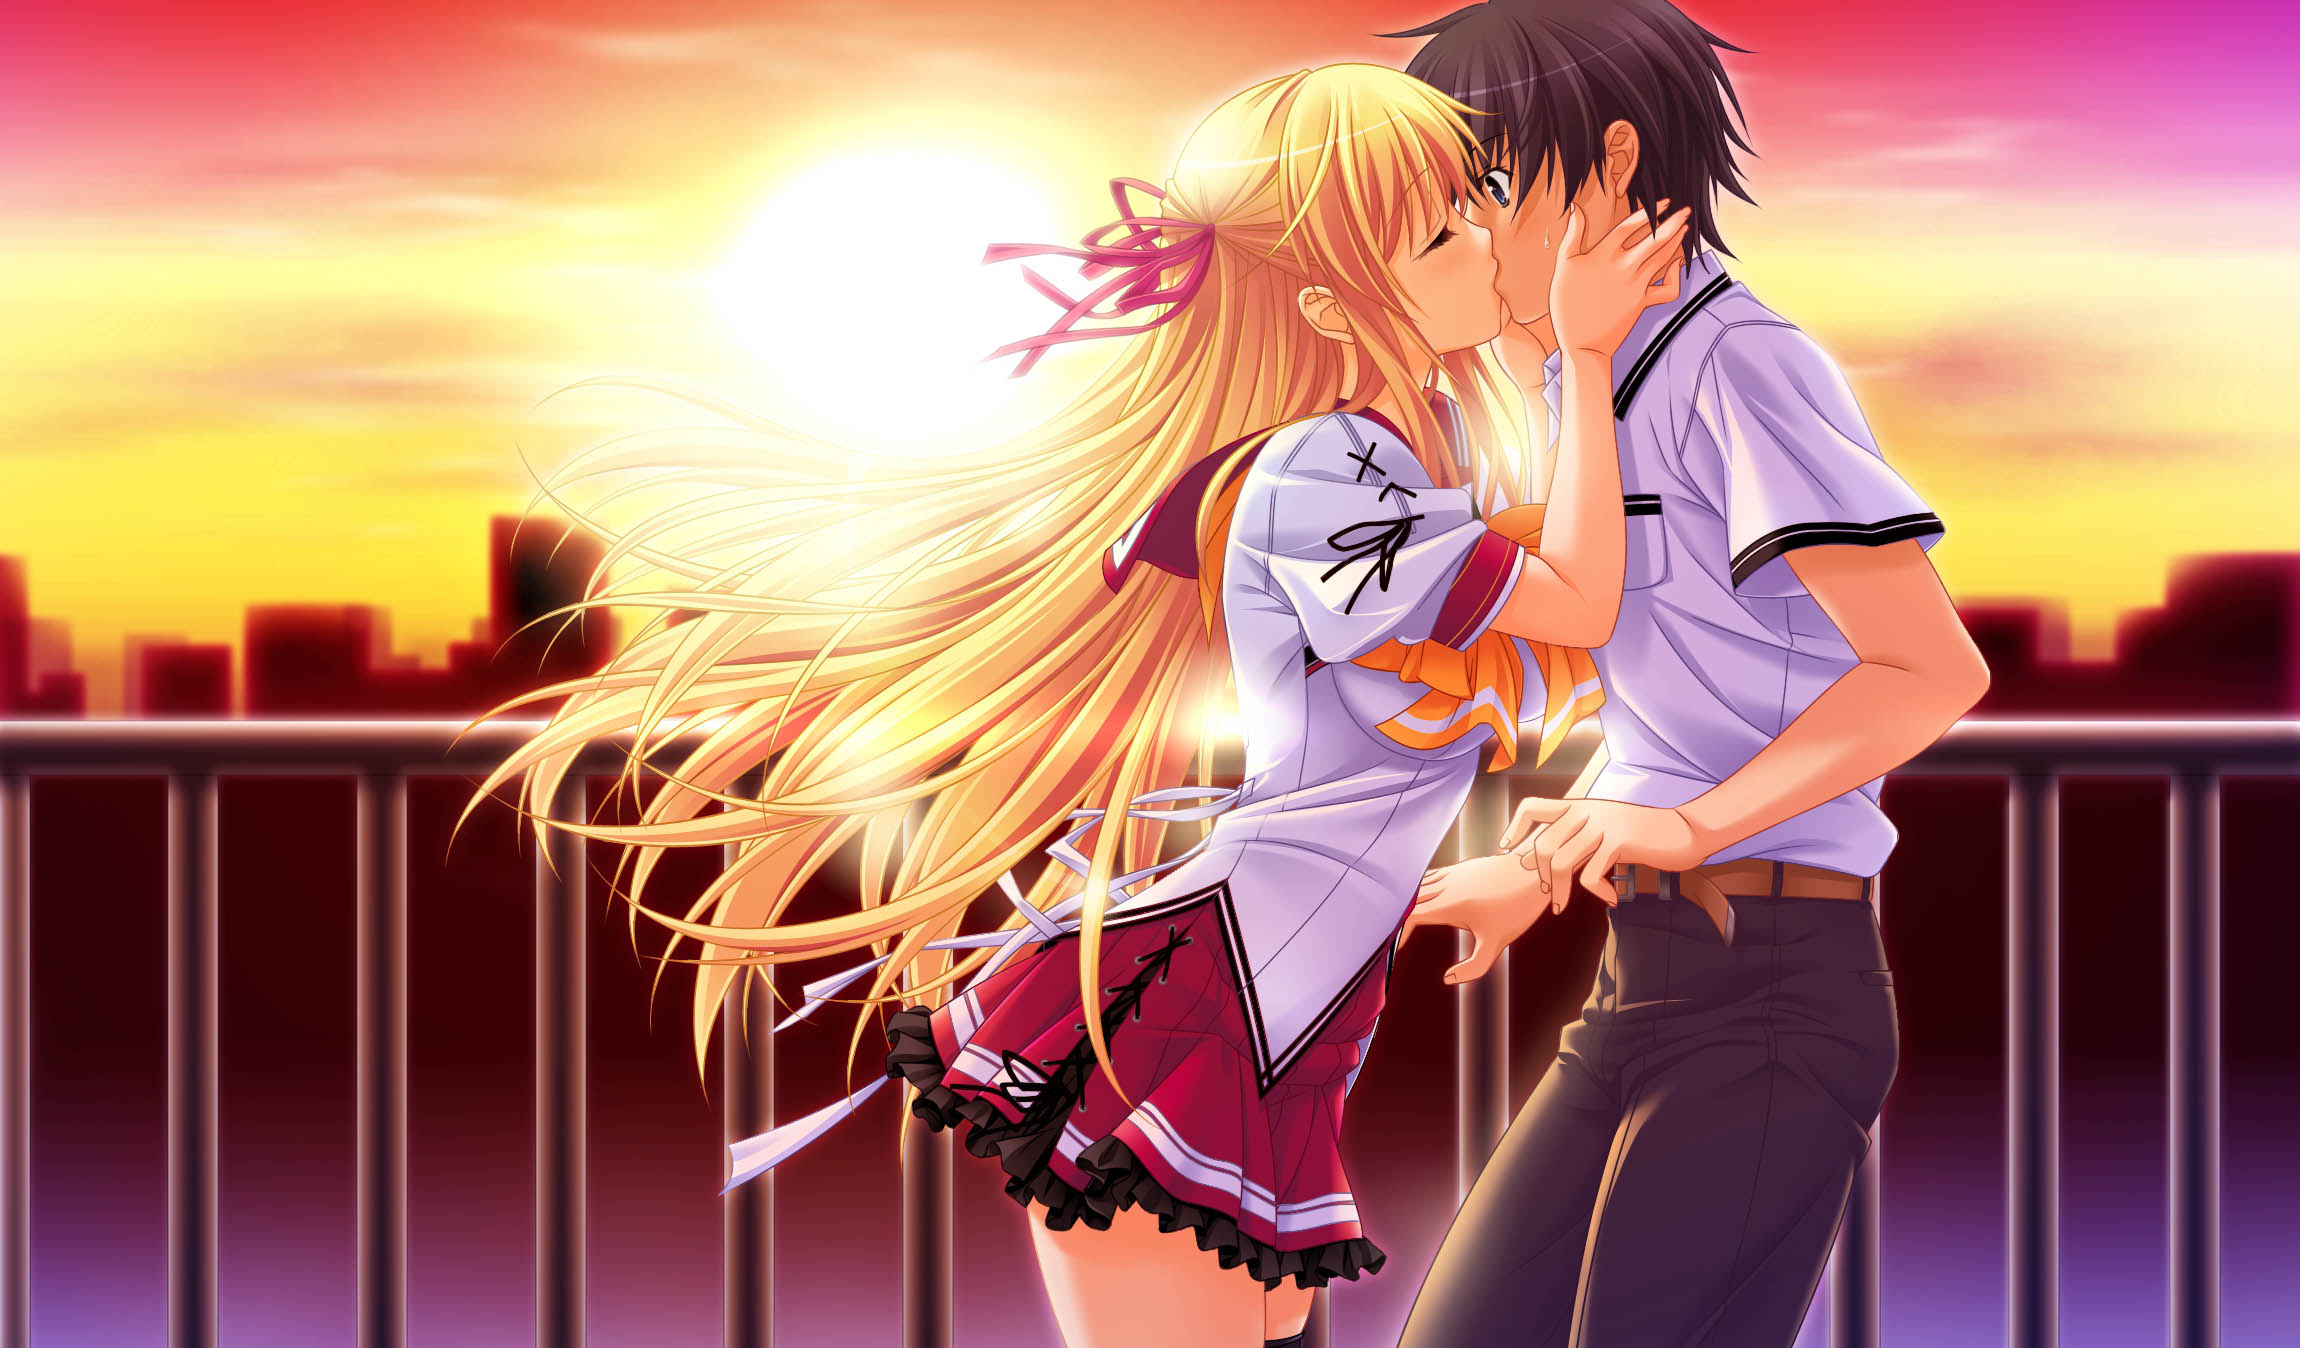 Wallpaper Hd Love Kiss Hot : Anime Kiss Wallpapers - WallpaperSafari